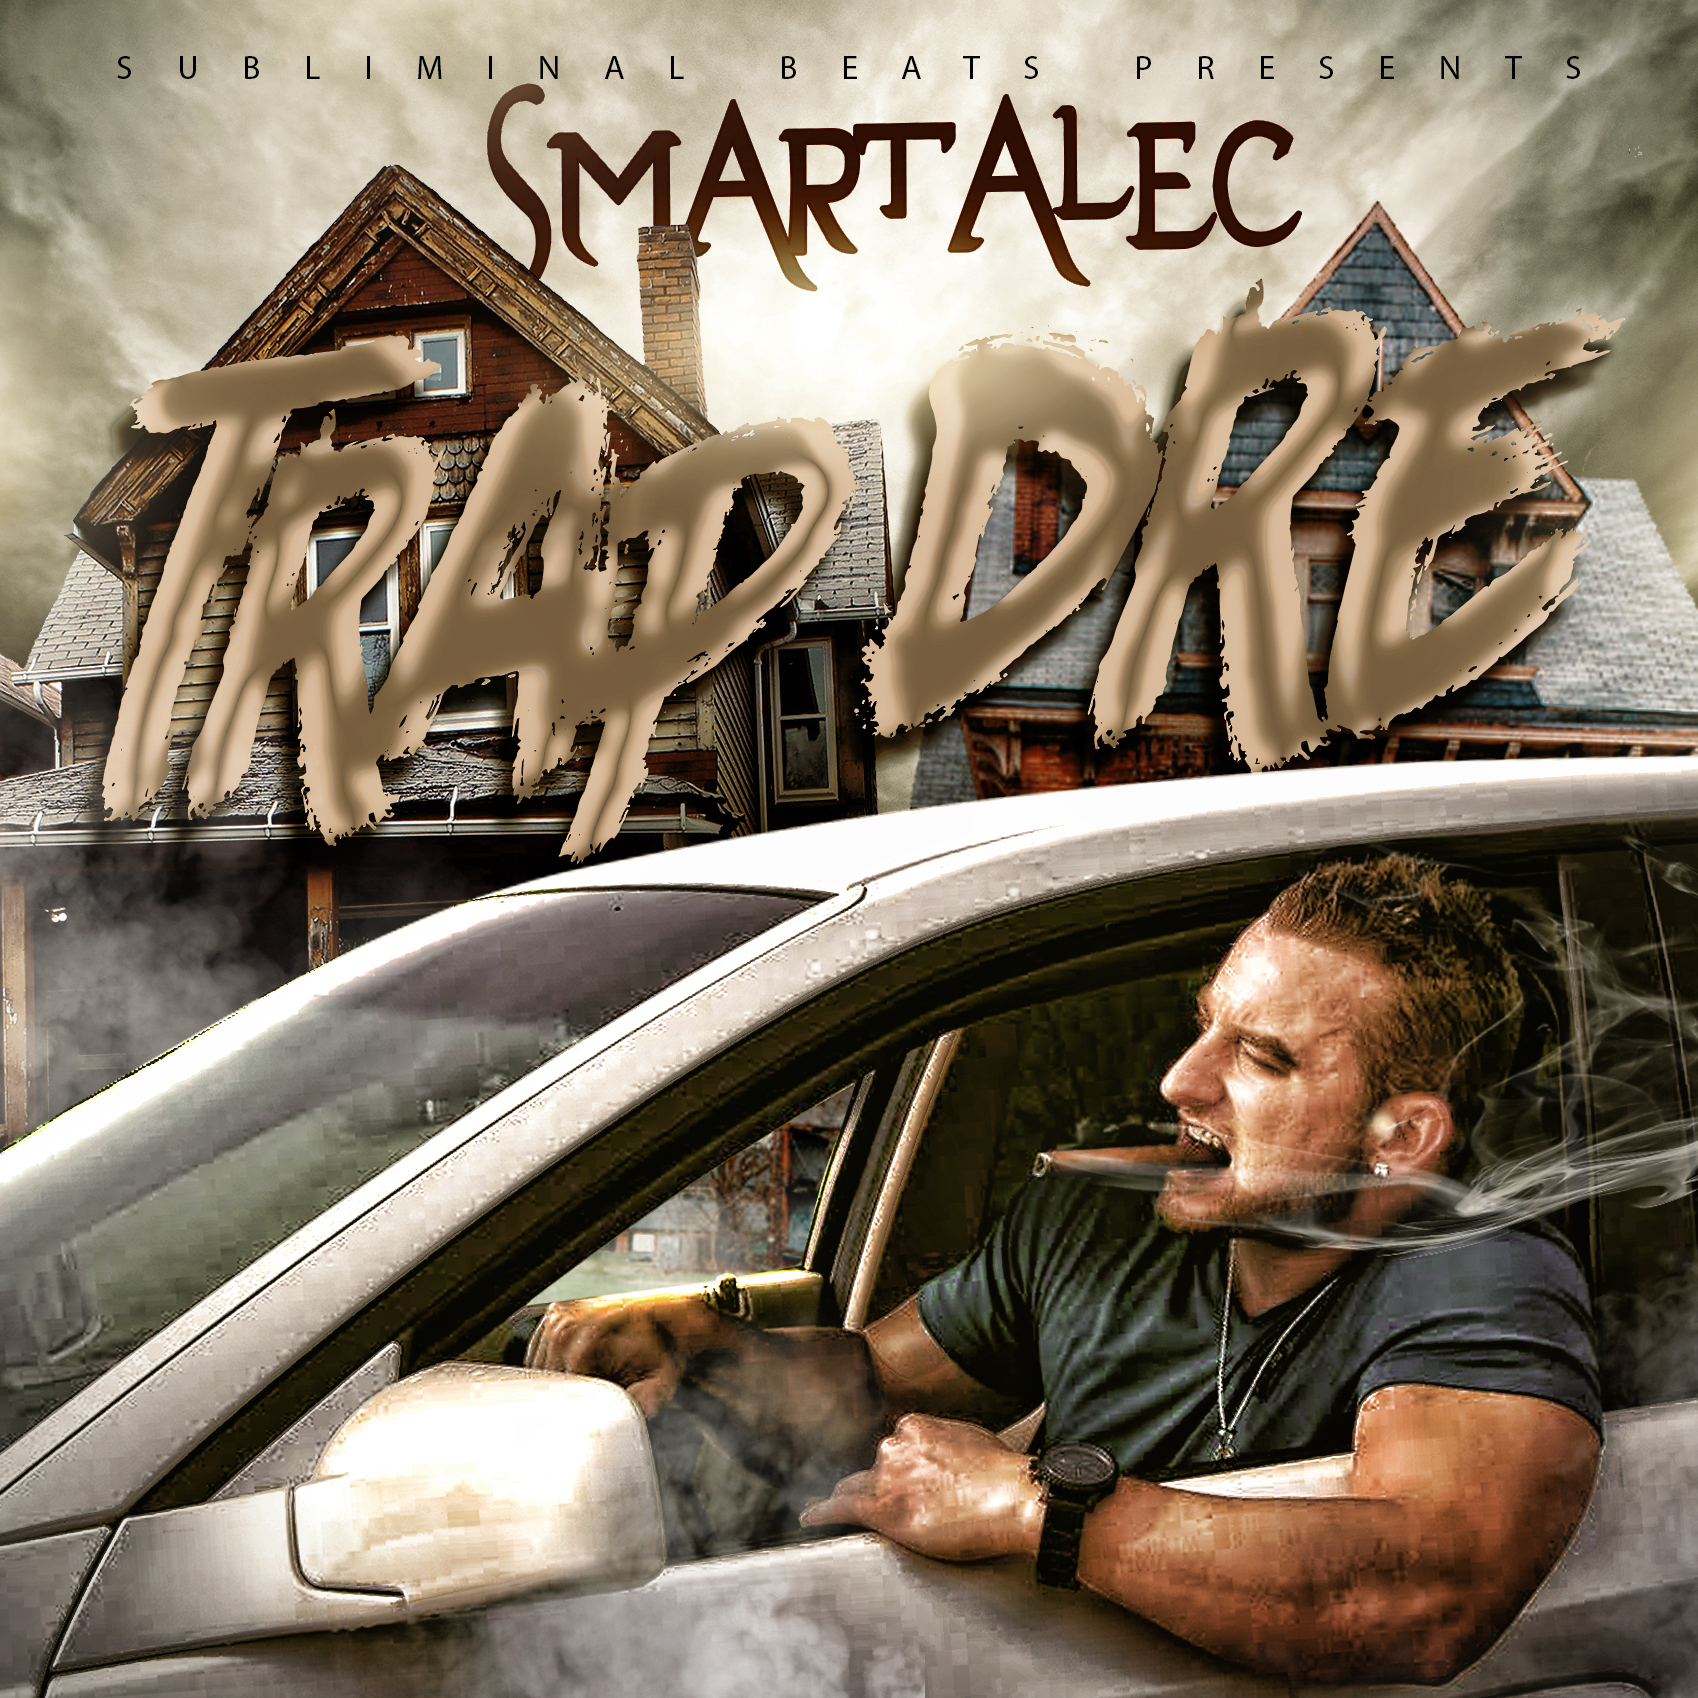 Smartalec (On The Track) - Trap Dre